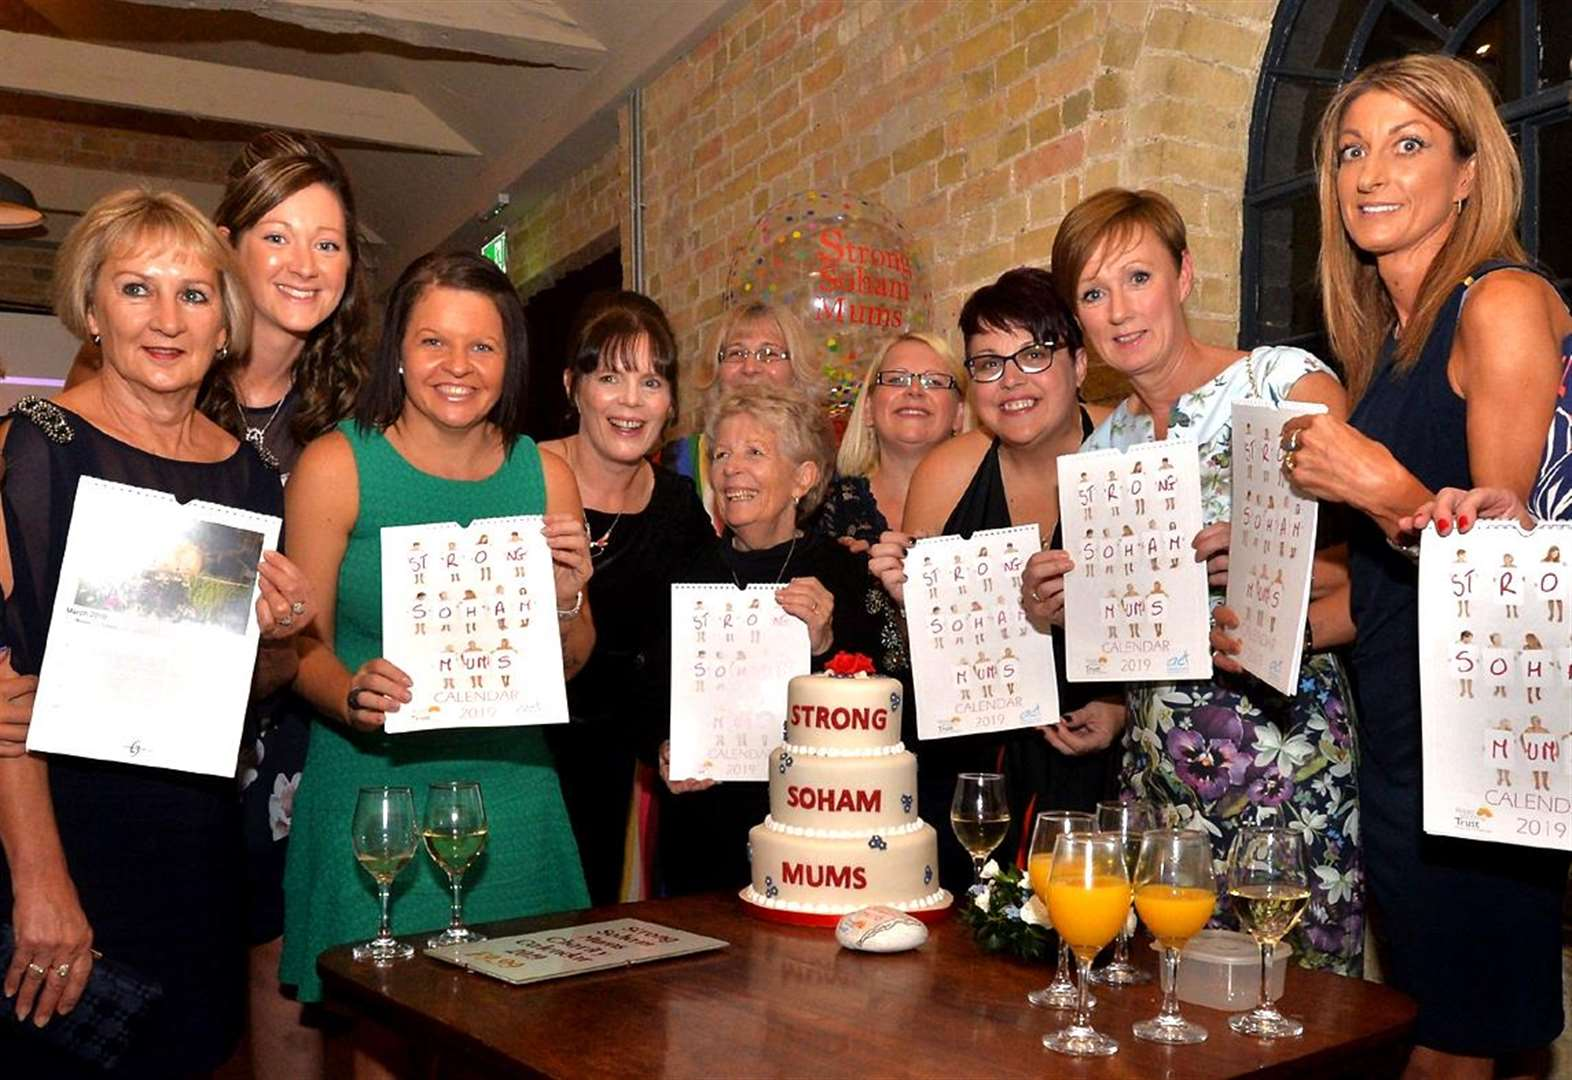 Strong Soham Mums launch charity calendar